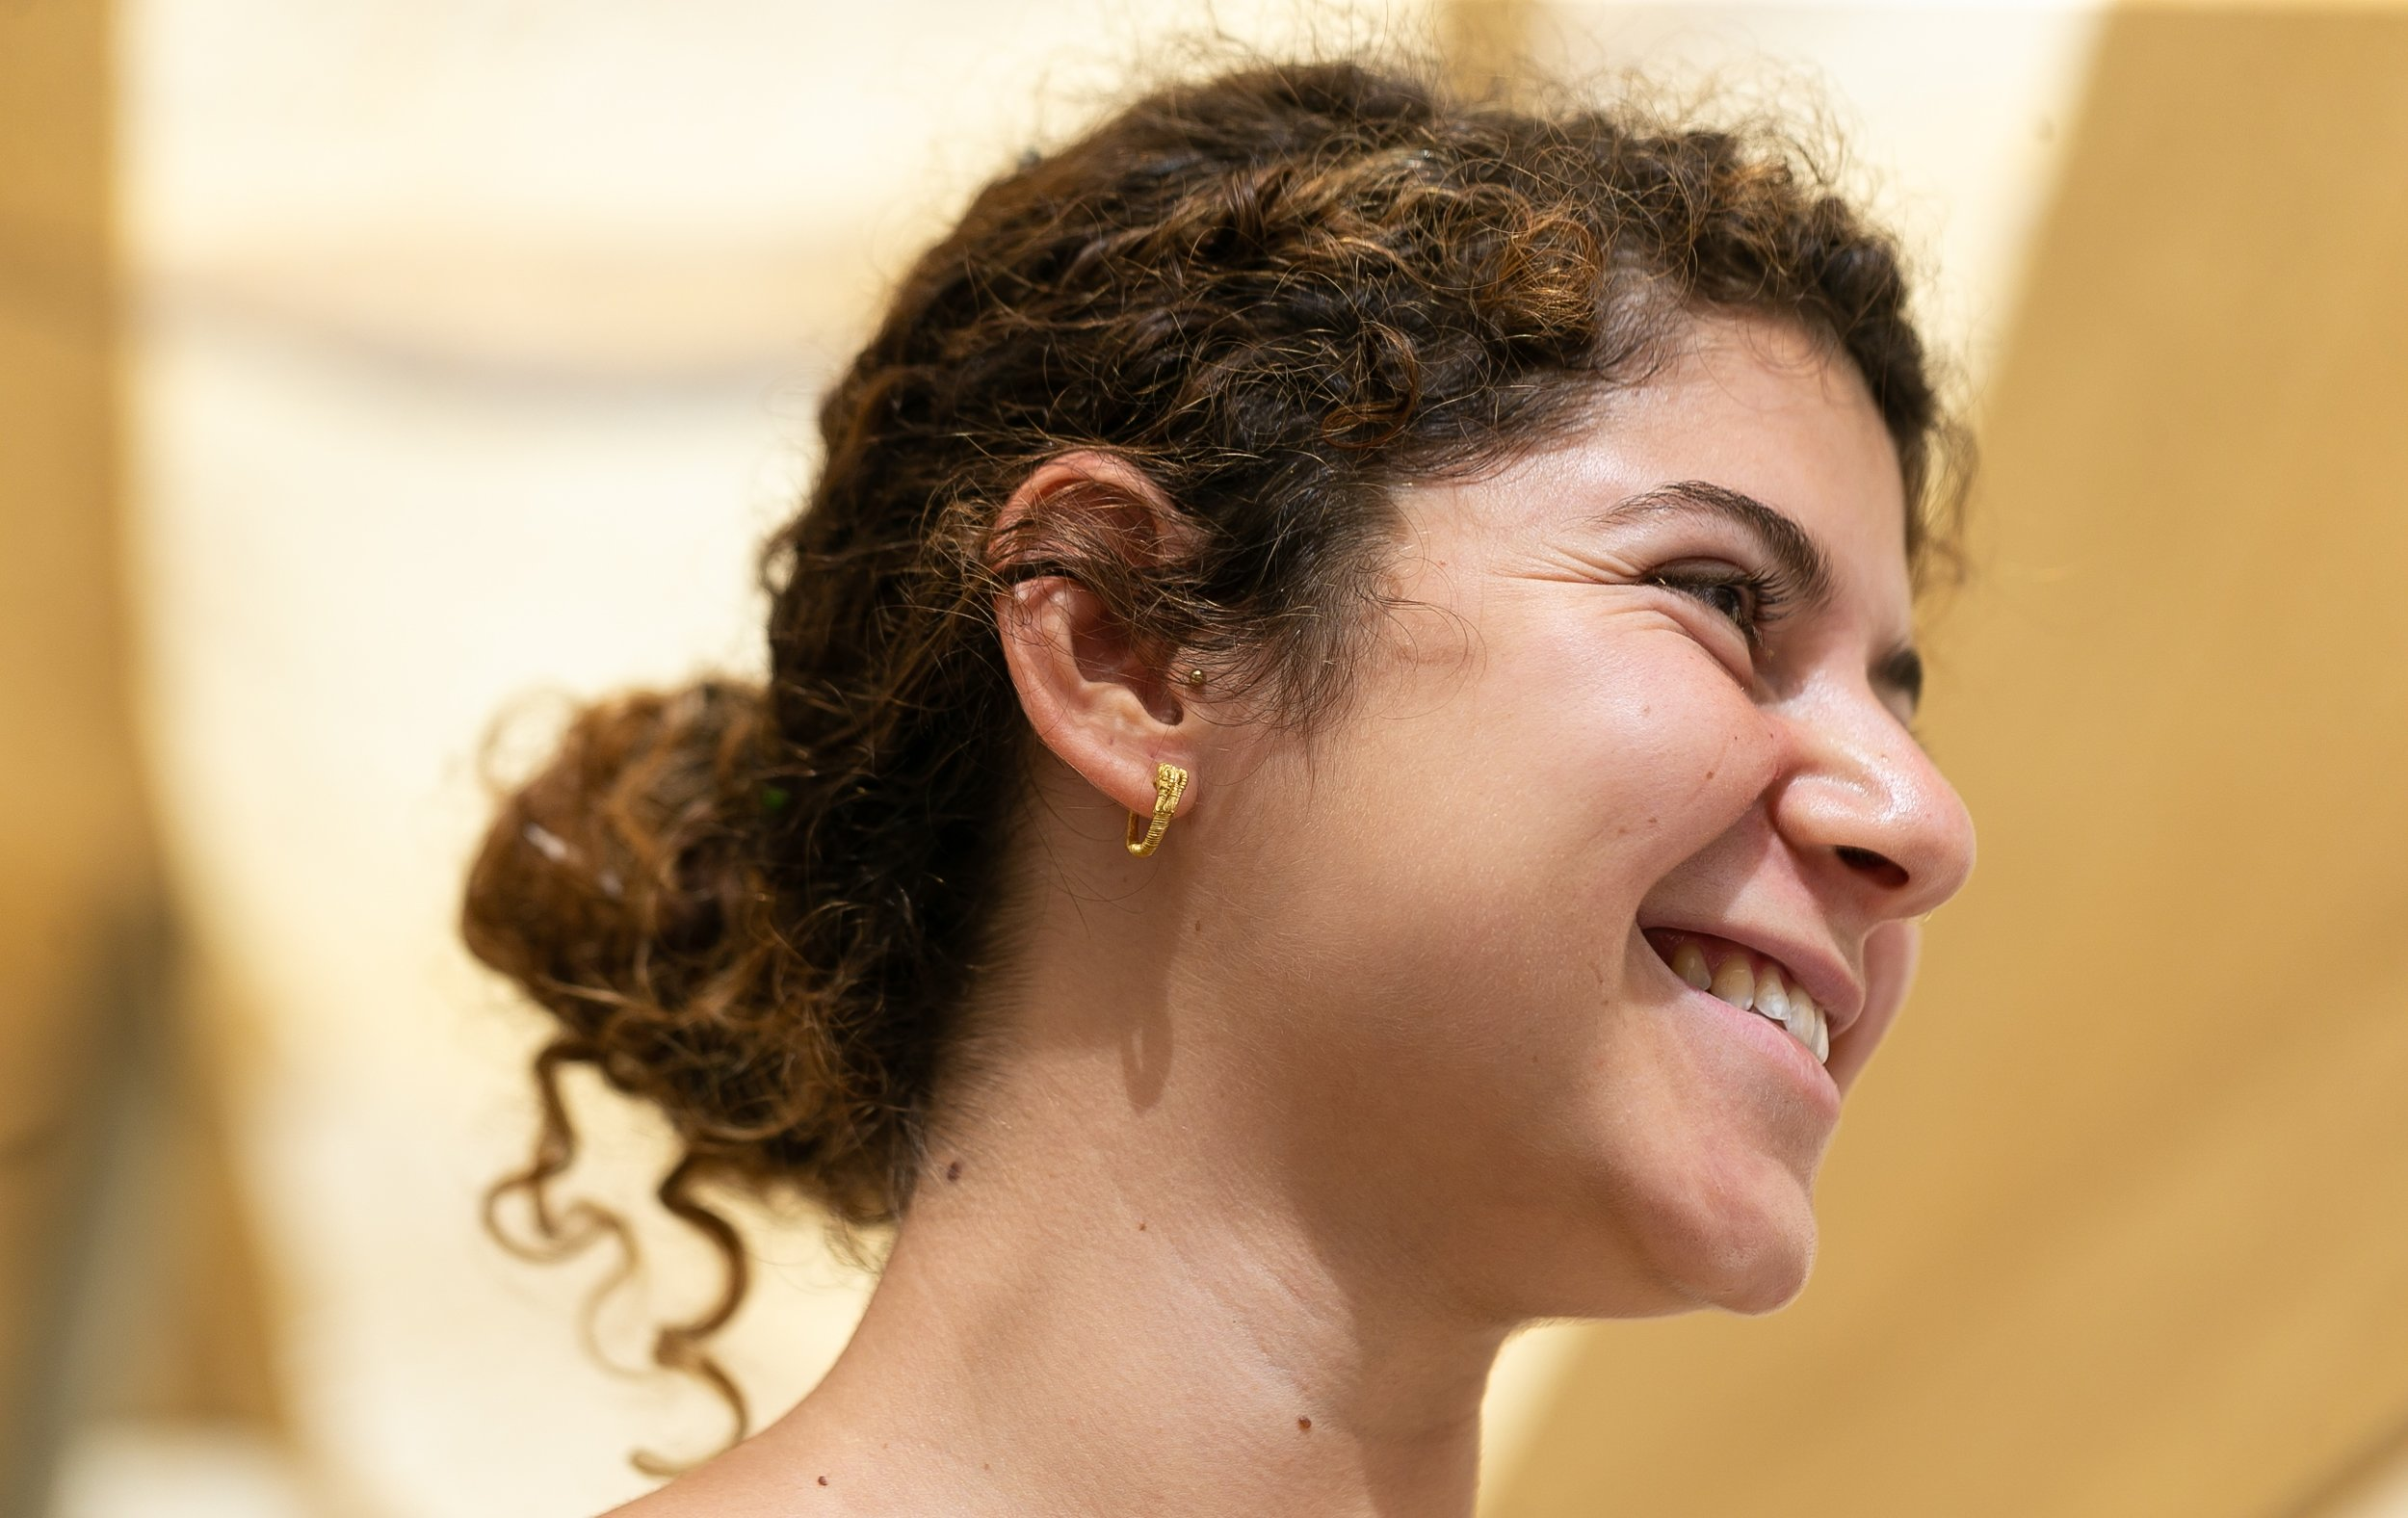 The gold earring belonged to an upper class man or woman in Jerusalem.  Photo : City of David